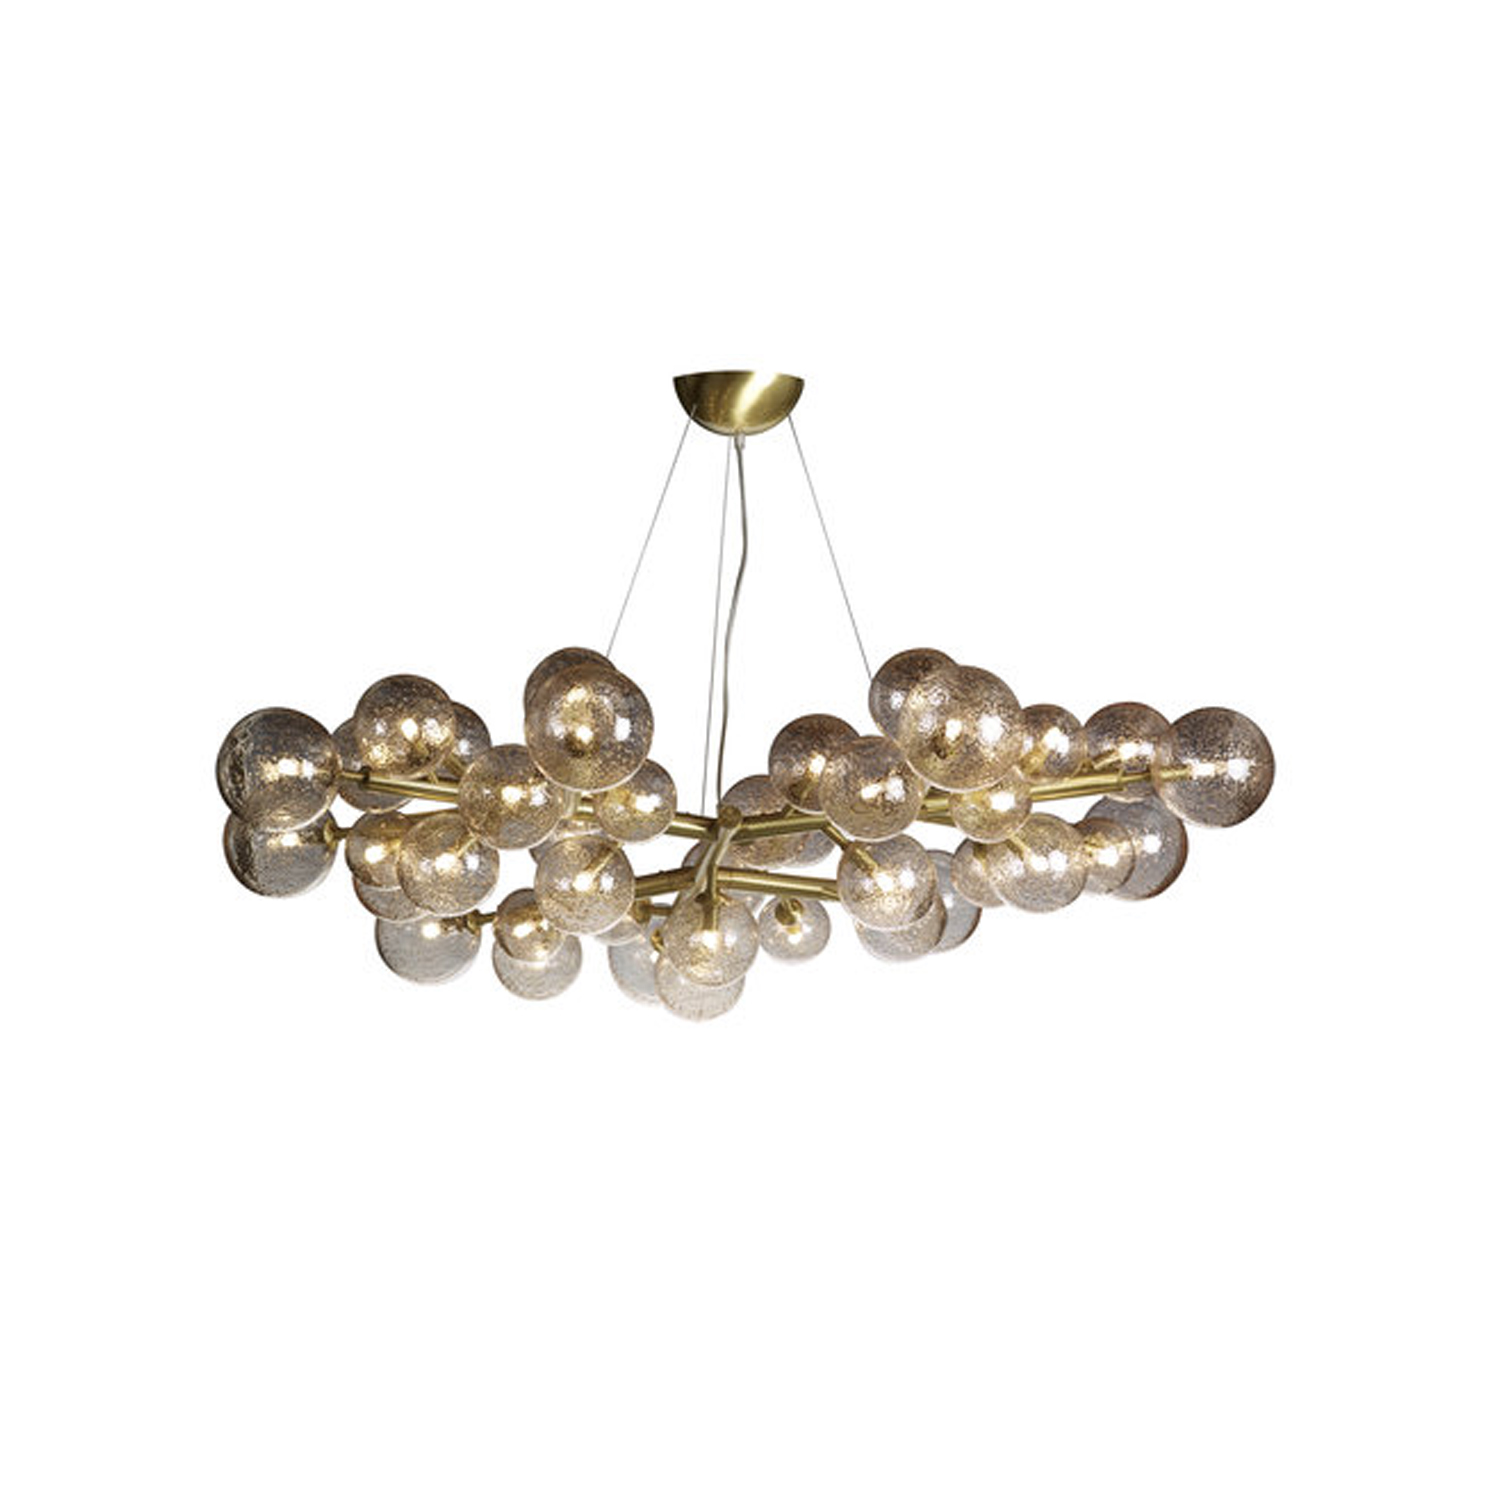 Mimosa 42 Brass Chandelier - This chandelier, designed and realised by the glassmaster Alberto Donà , is totally different from our classic collection. Its peculiarity is the simplicity of the frame decorated with 42 glass spheres – that during blowing are decorated by the master adding  gold, copper or brass powder. The result is a simple but impressive chandelier especially when lighted. Each sphere has a G9 2.5w bulb. Chandeliers are available in different sizes.  | Matter of Stuff